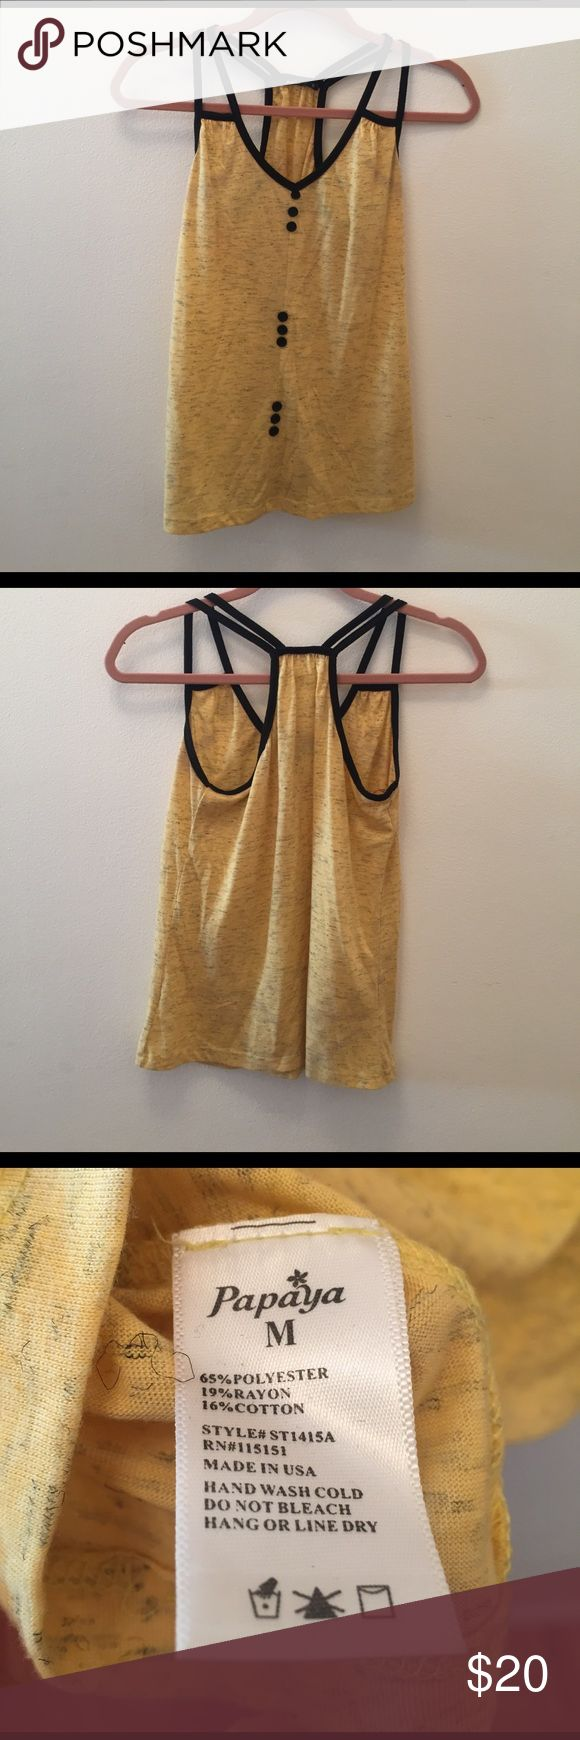 Yellow Tank Top Yellow Tank Top size M. Message me if interested! Offers are welcome :) Papaya Tops Tank Tops